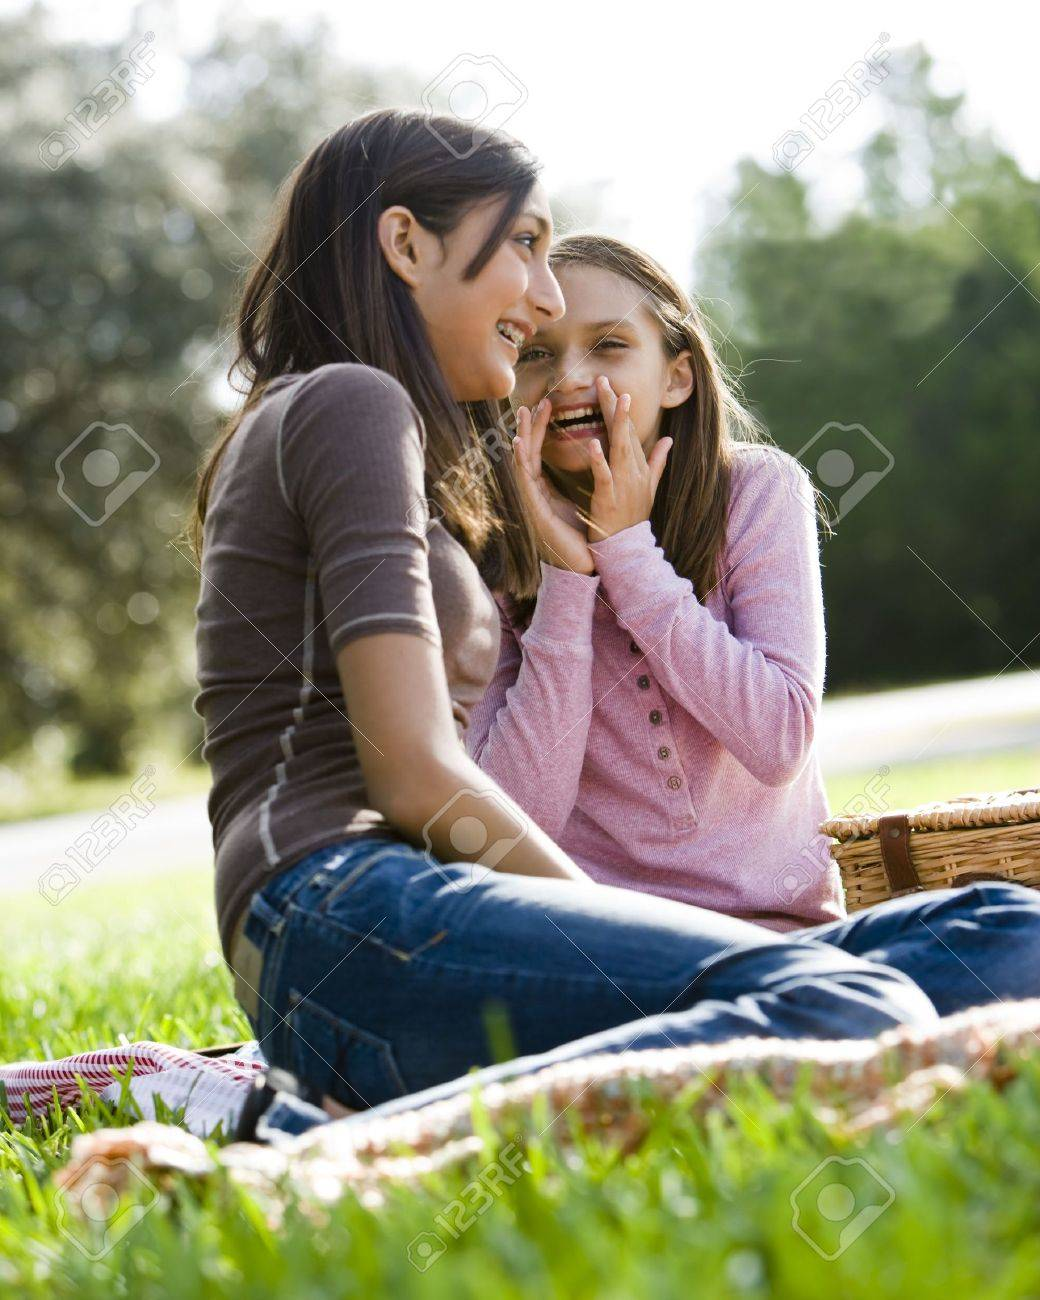 Girls whispering to each other at picnic in park Stock Photo - 6865208